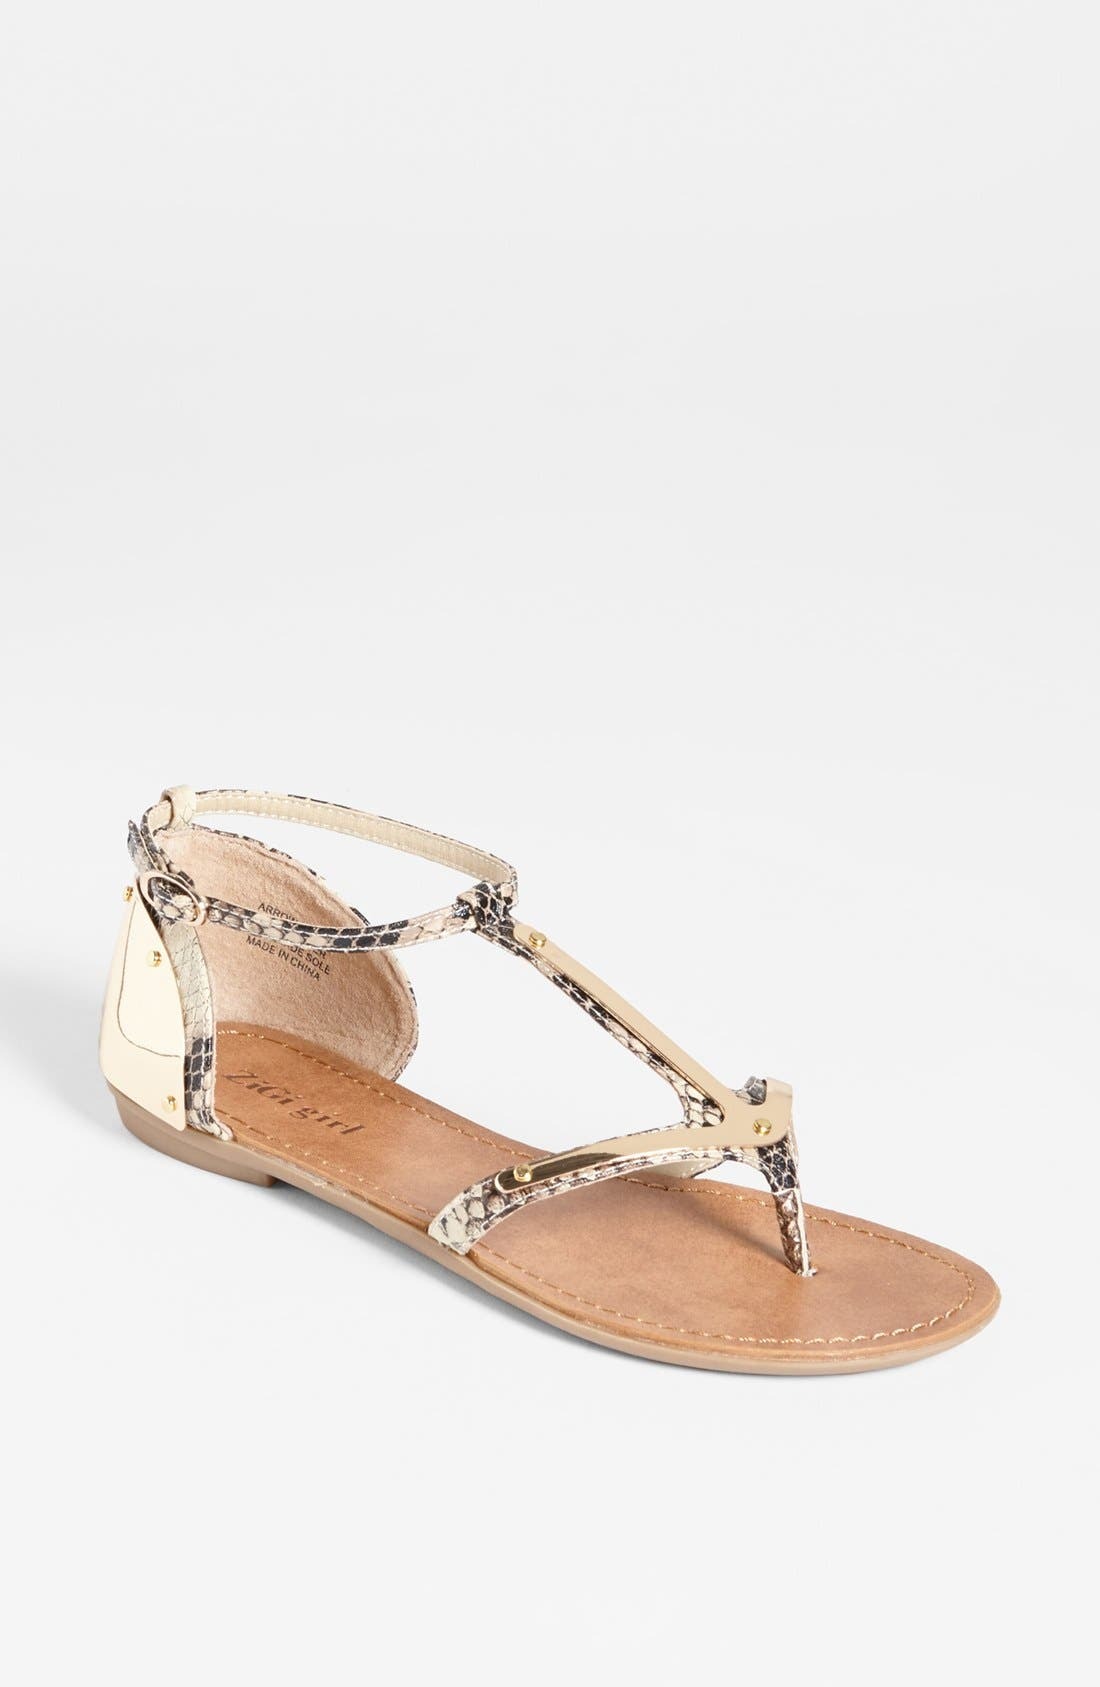 Alternate Image 1 Selected - ZiGi girl 'Arrow' Sandal